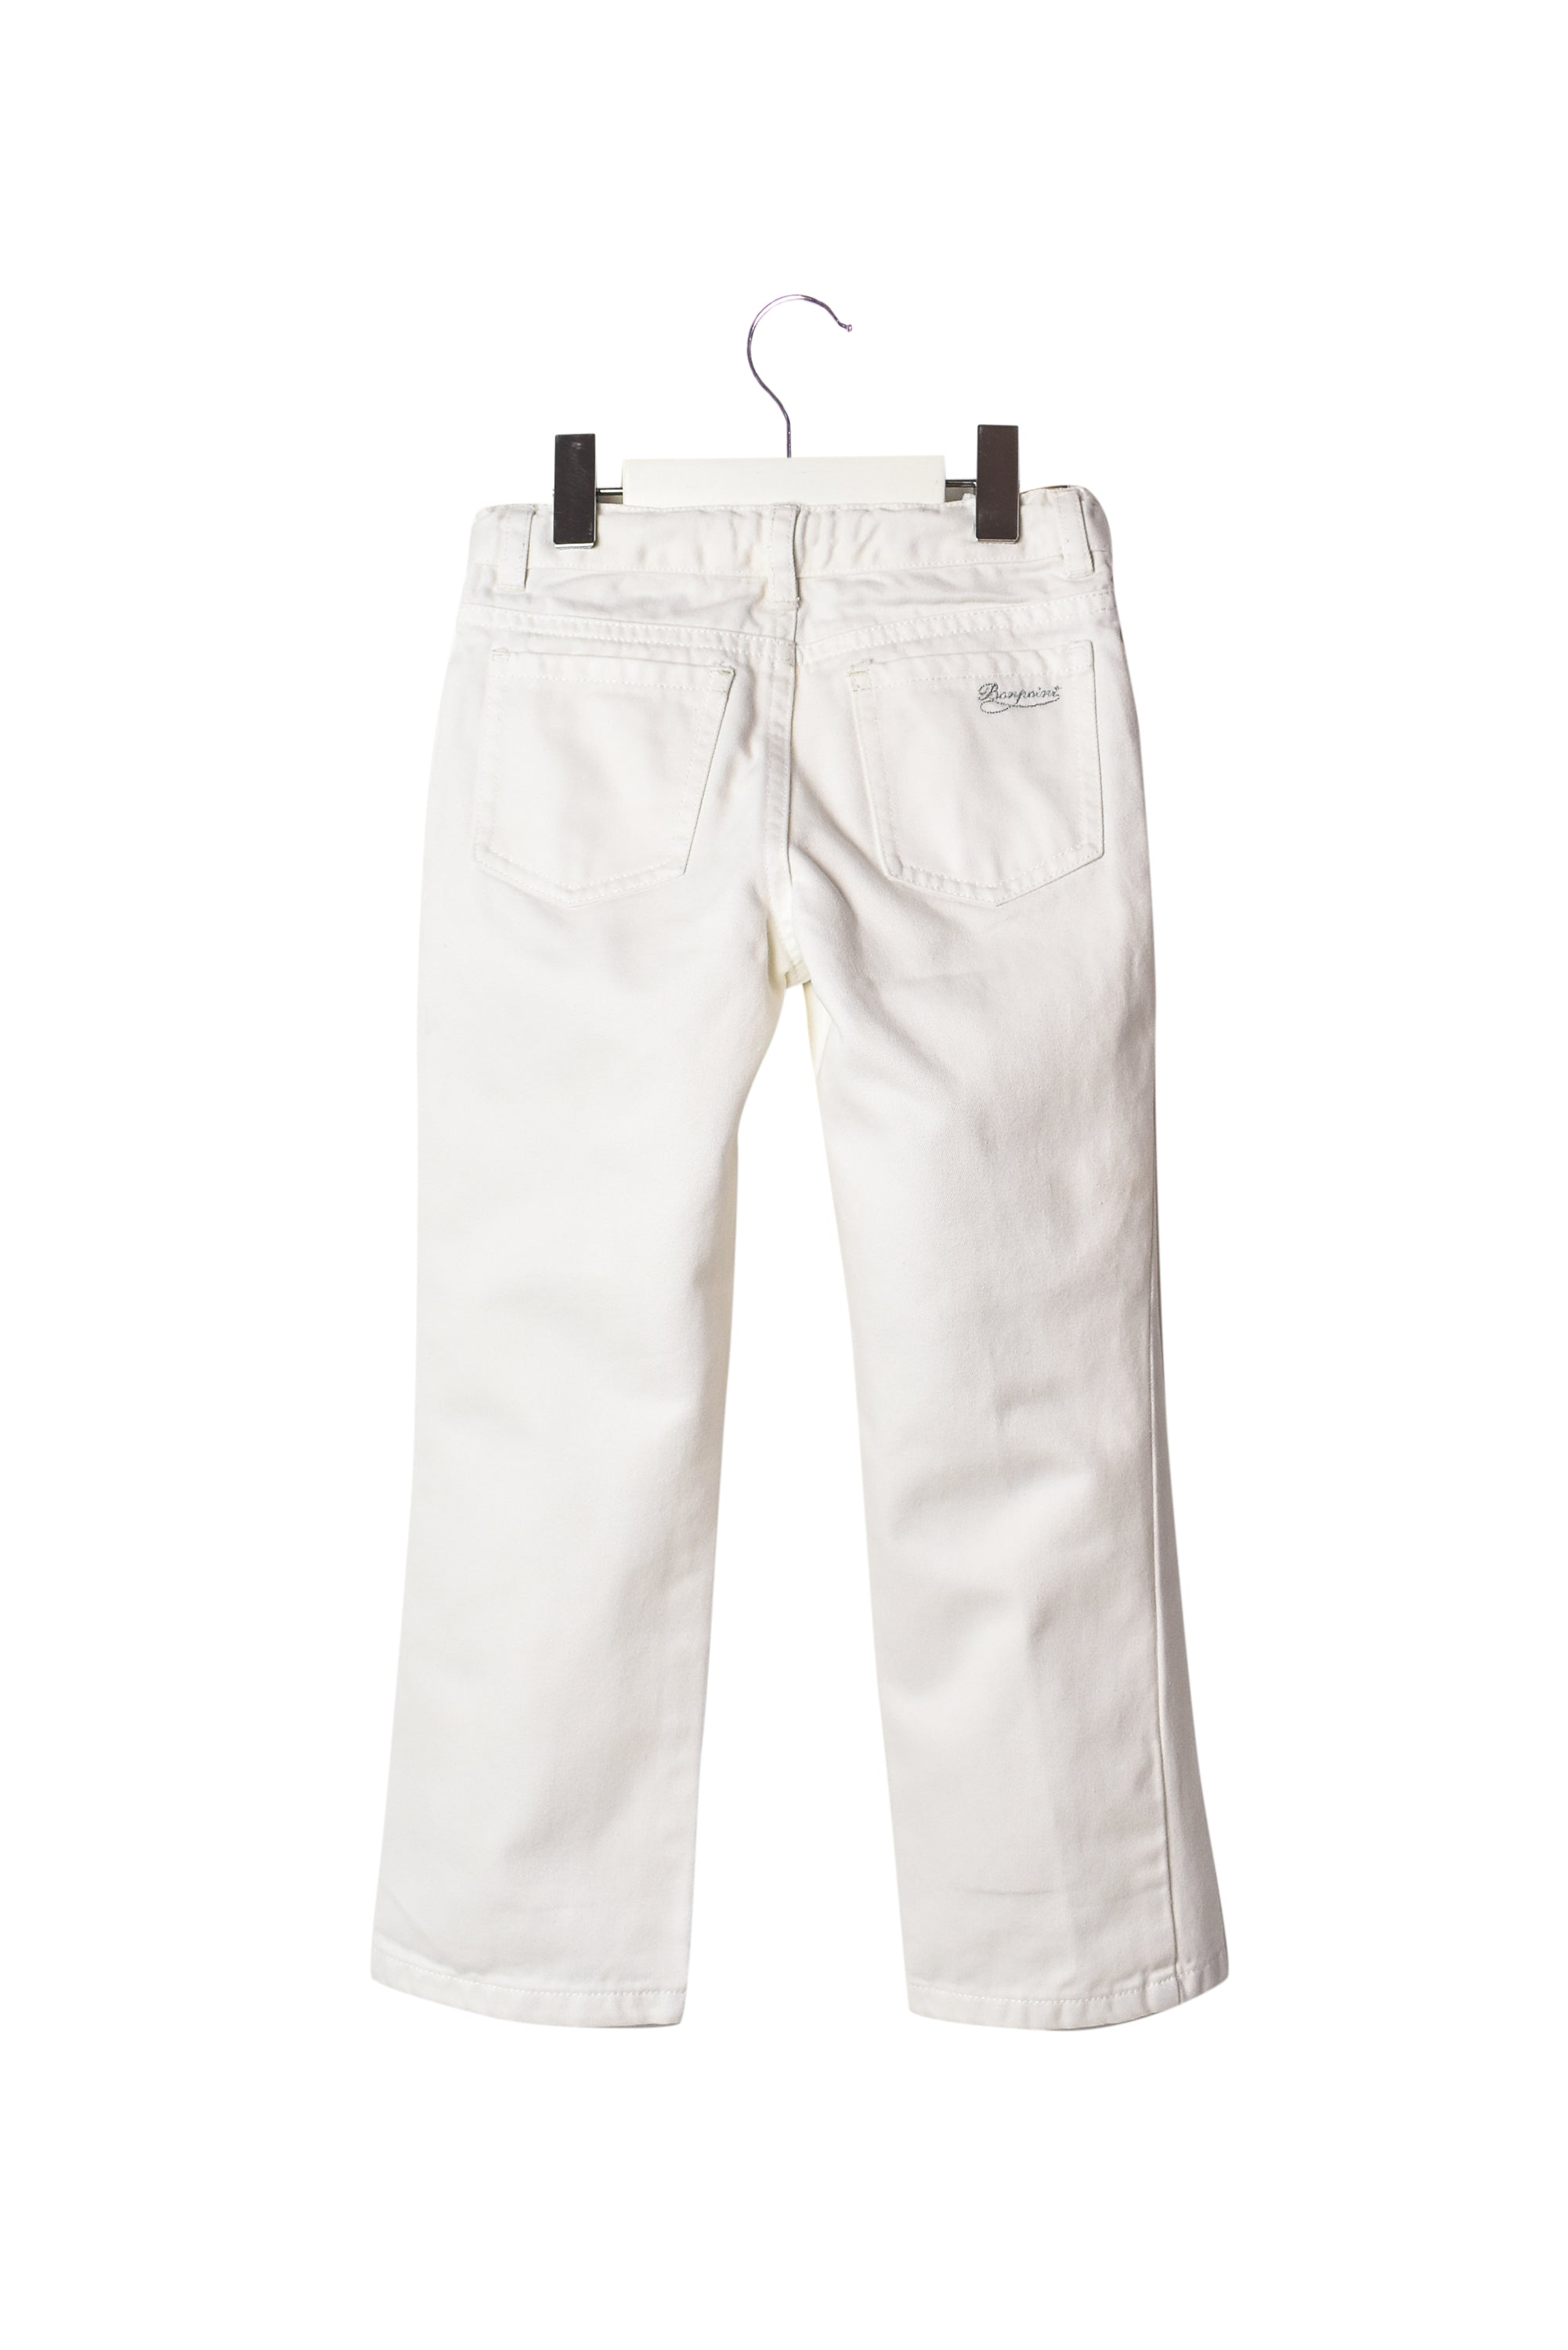 10007367 Bonpoint Kids~ Pants 4T at Retykle